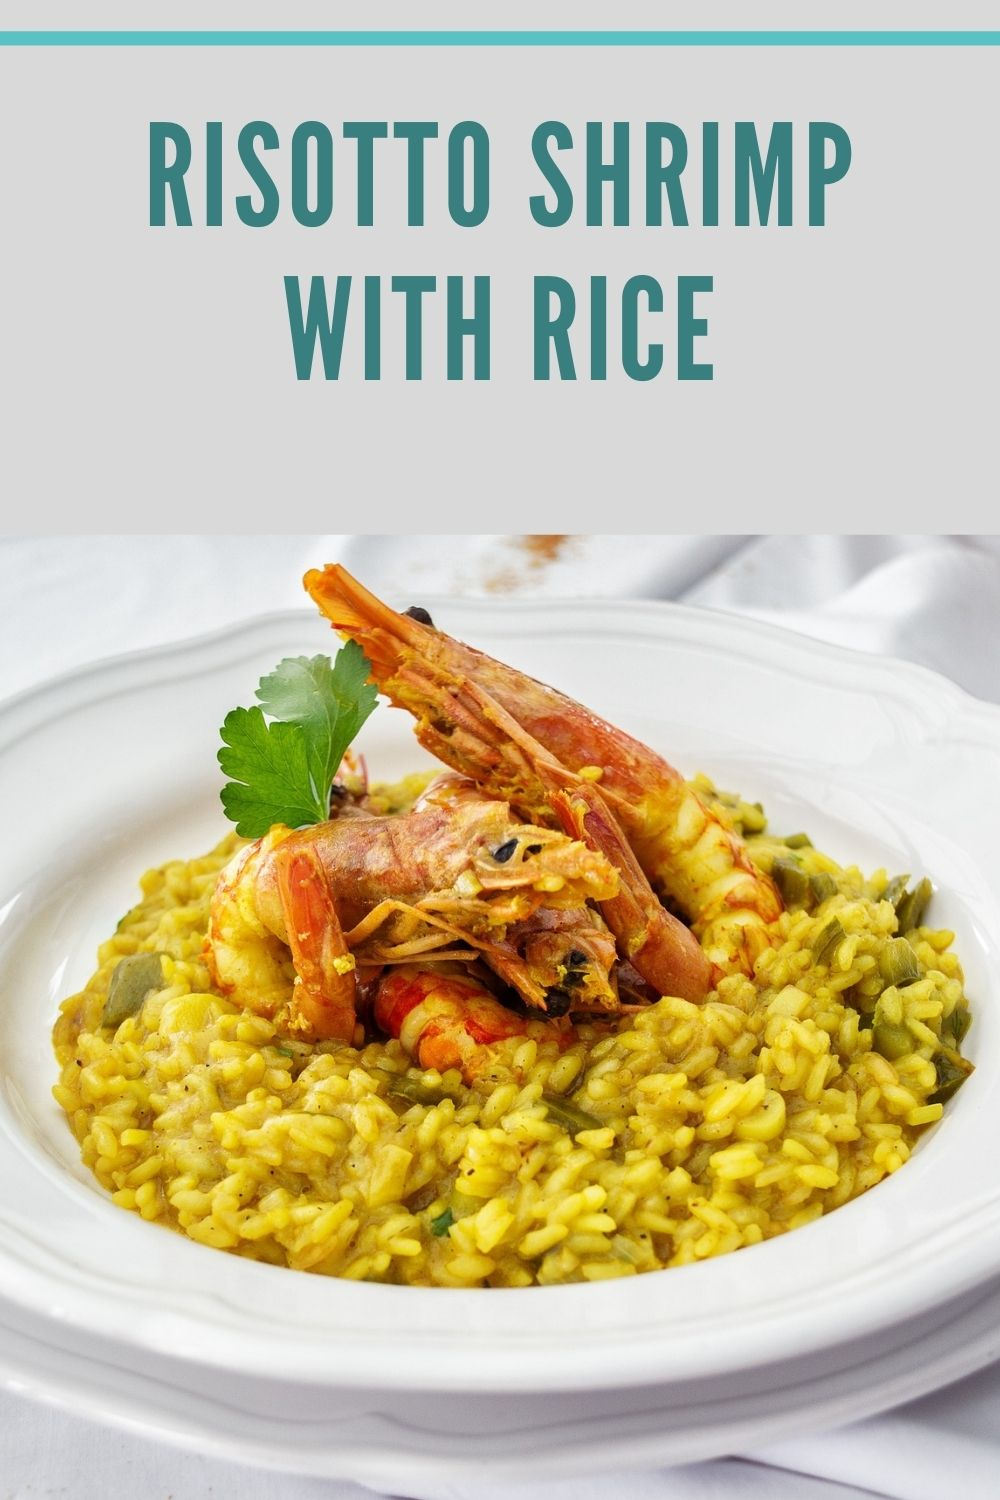 Risotto Shrimp with Rice